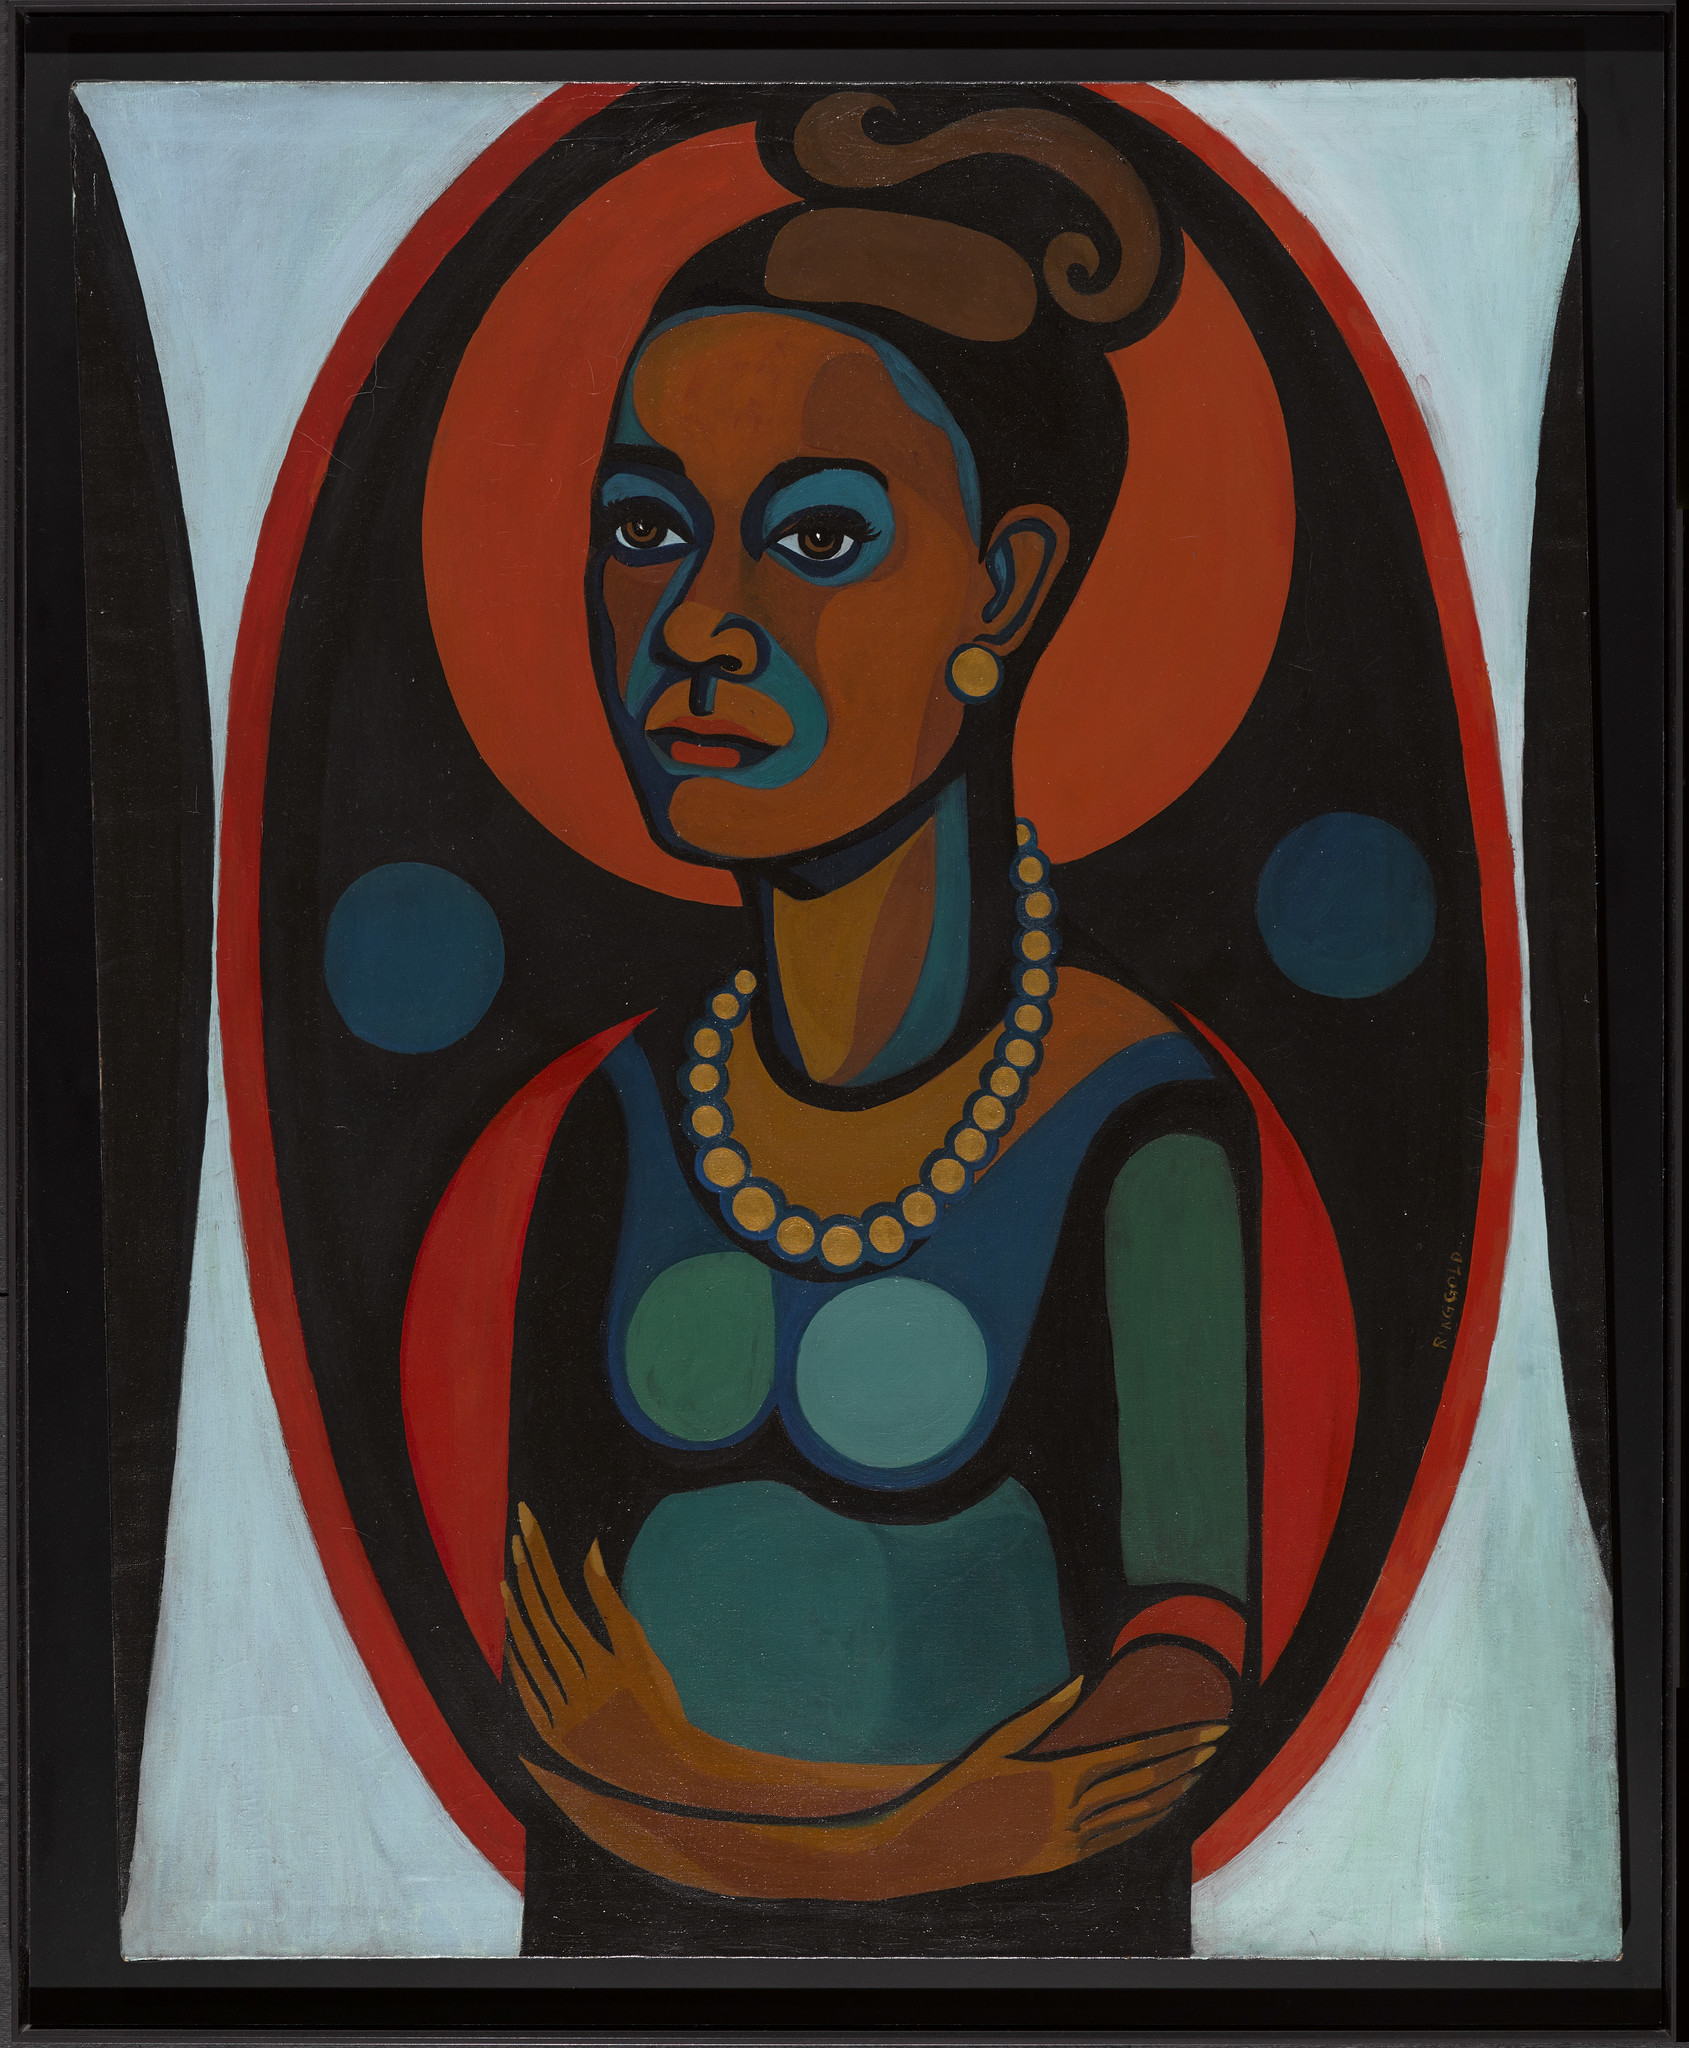 African American Art, African American Artists, Black Art, Black Artists, African American Female Artists, Michele Wallace, Faith Ringgold, Jae Jarrell, Lorraine O'Grady, Maren Hassinger, Betye Saa, KOLUMN Magazine, KOLUMN